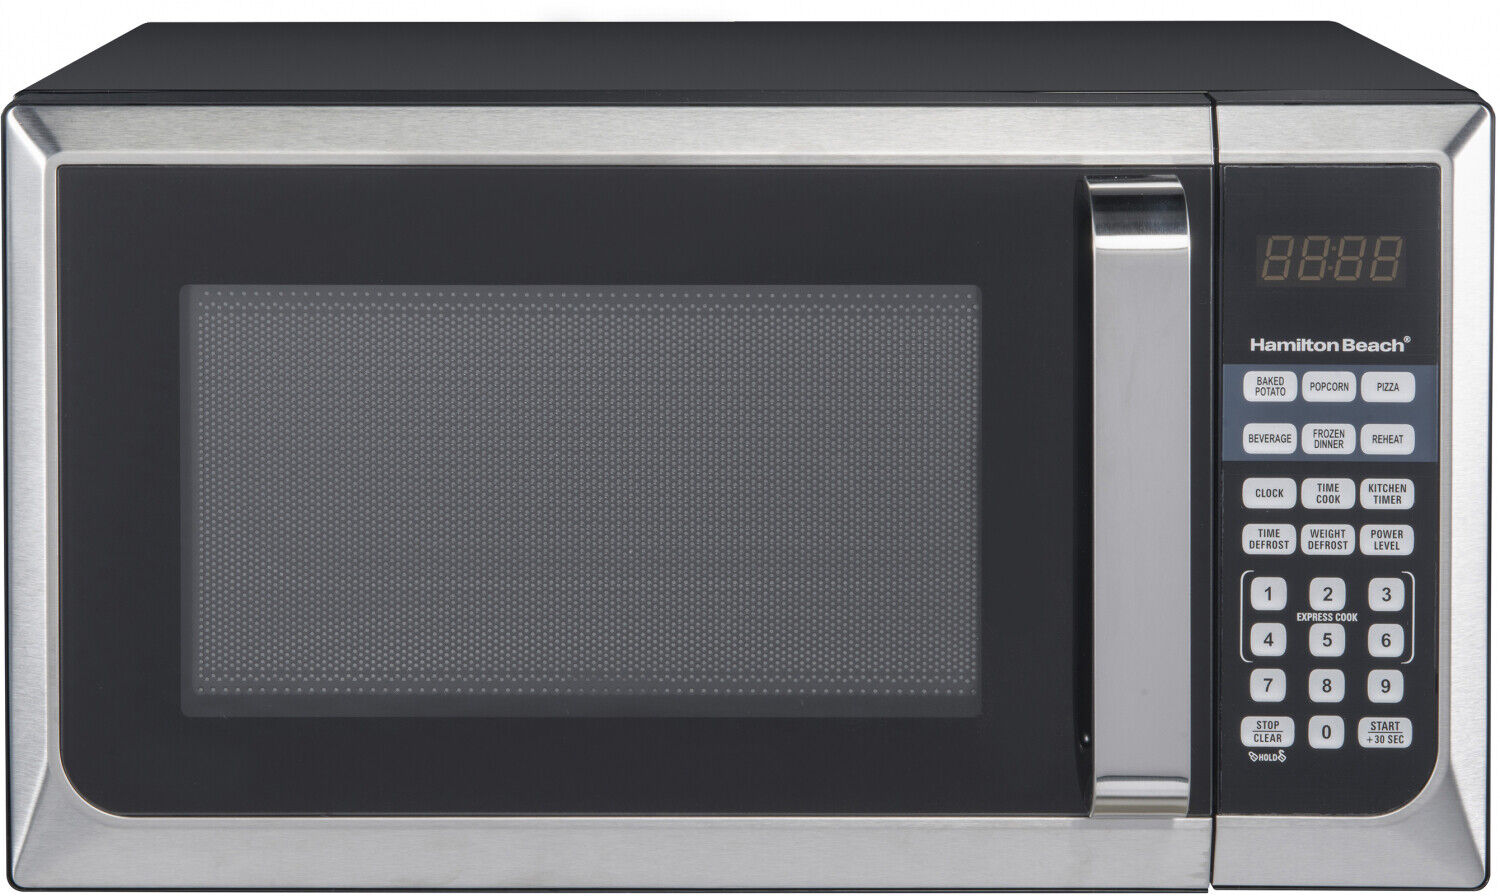 stainless steel countertop microwave oven for apartment